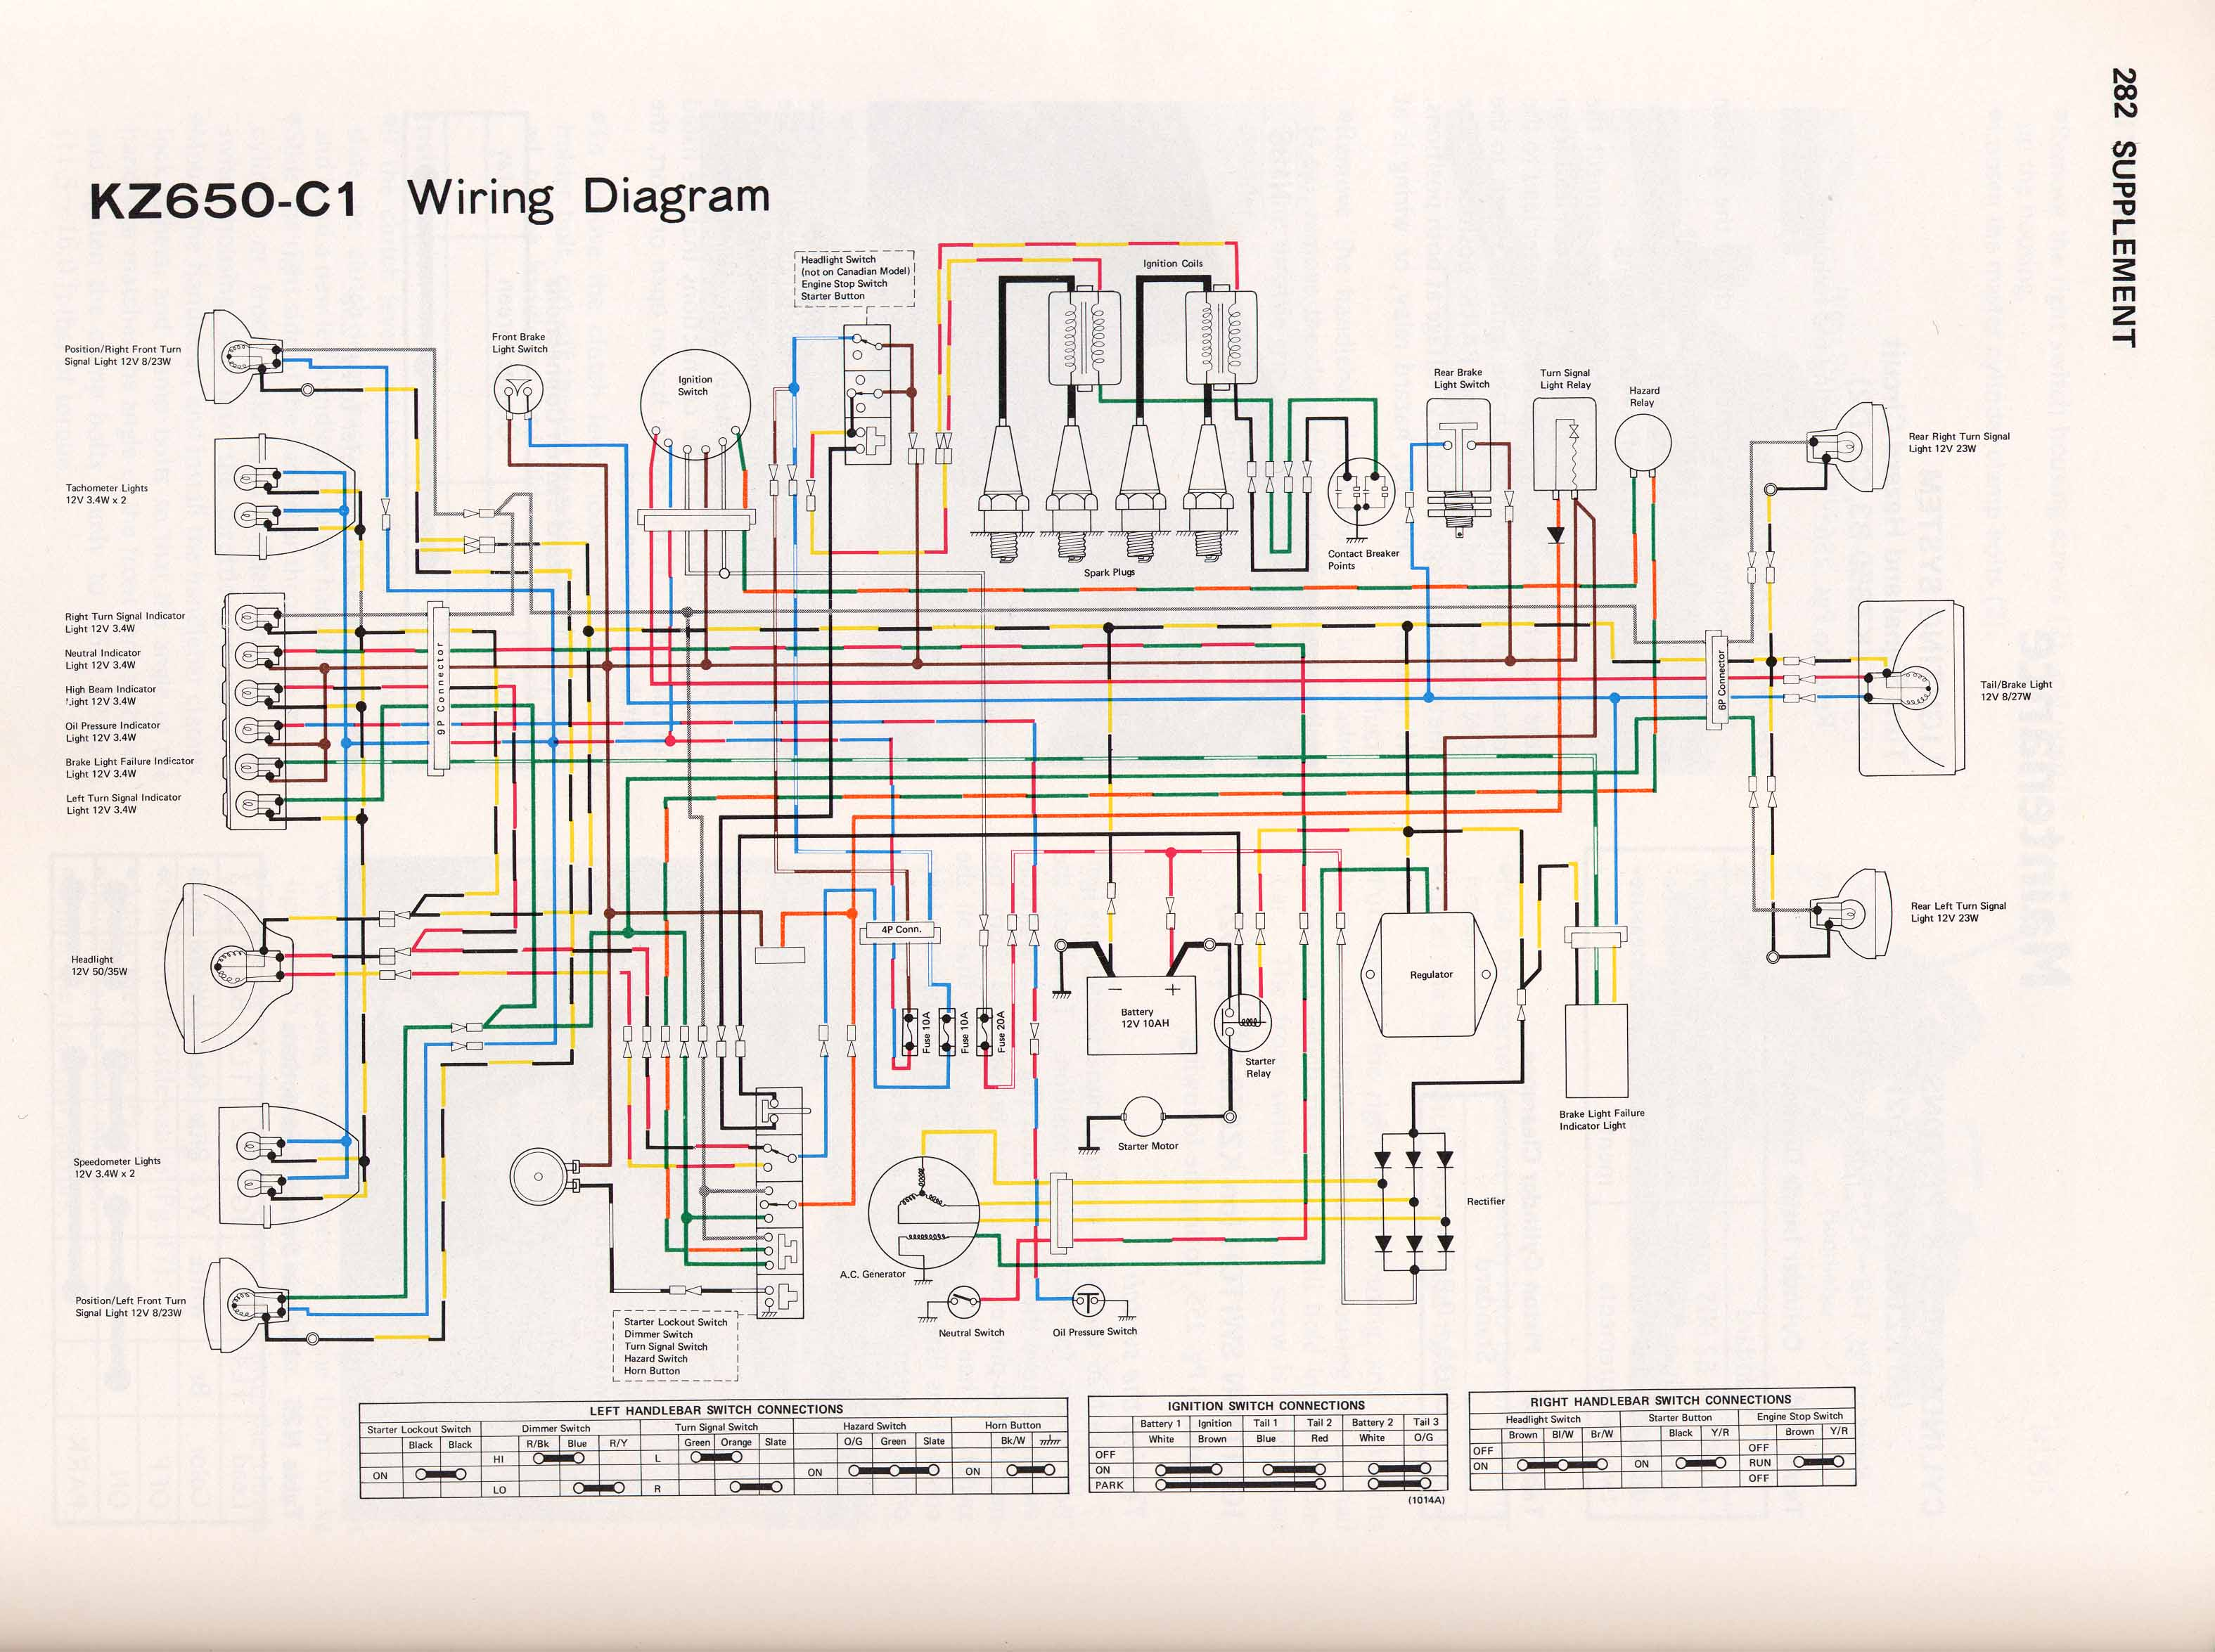 KZ650 C1 kz650 info wiring diagrams 1980 kawasaki 440 ltd wiring diagram at bakdesigns.co